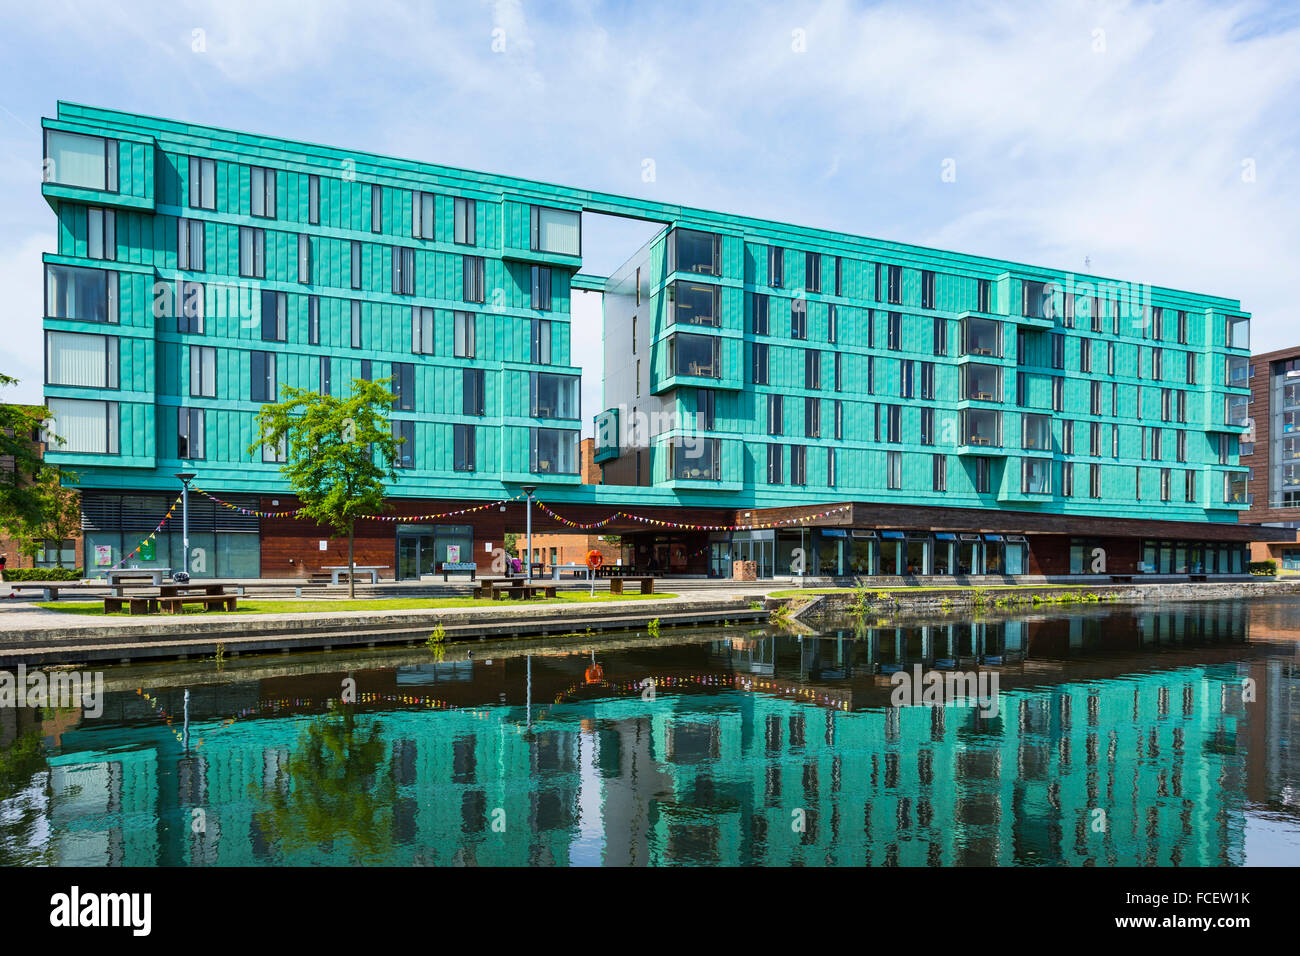 France House Queen Mary University Of London Mile End